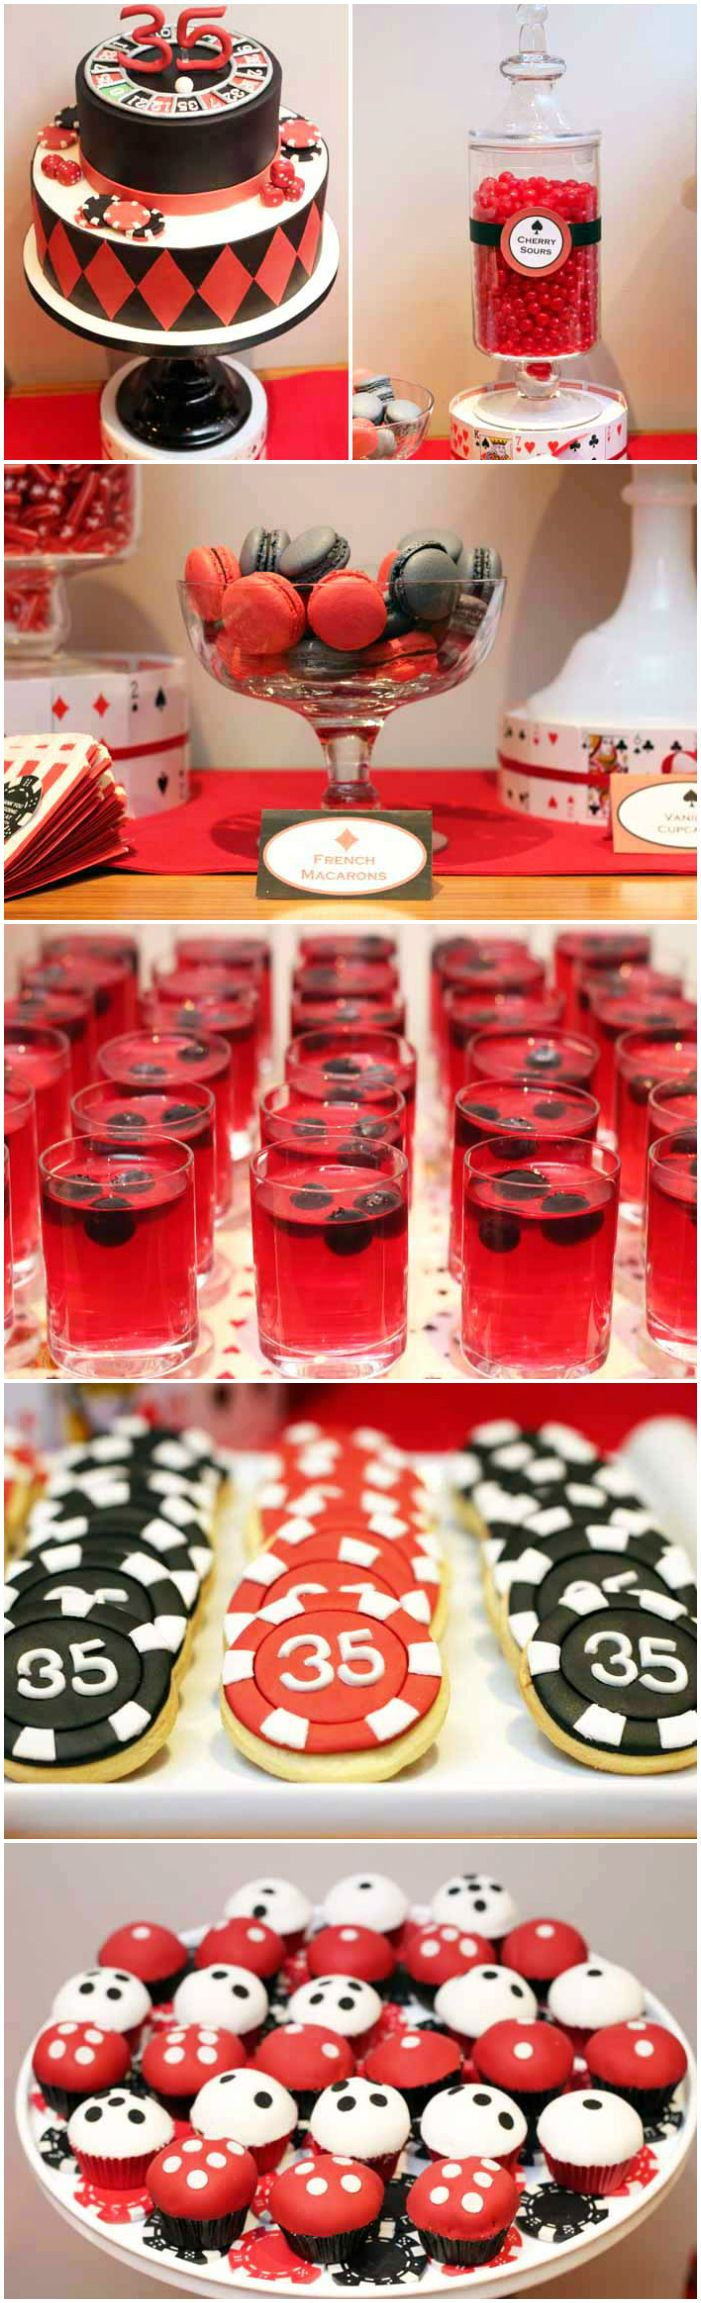 Mottoparty James Bond Poker Party Guest Dessert Feature | Poker Chips, Free Cash